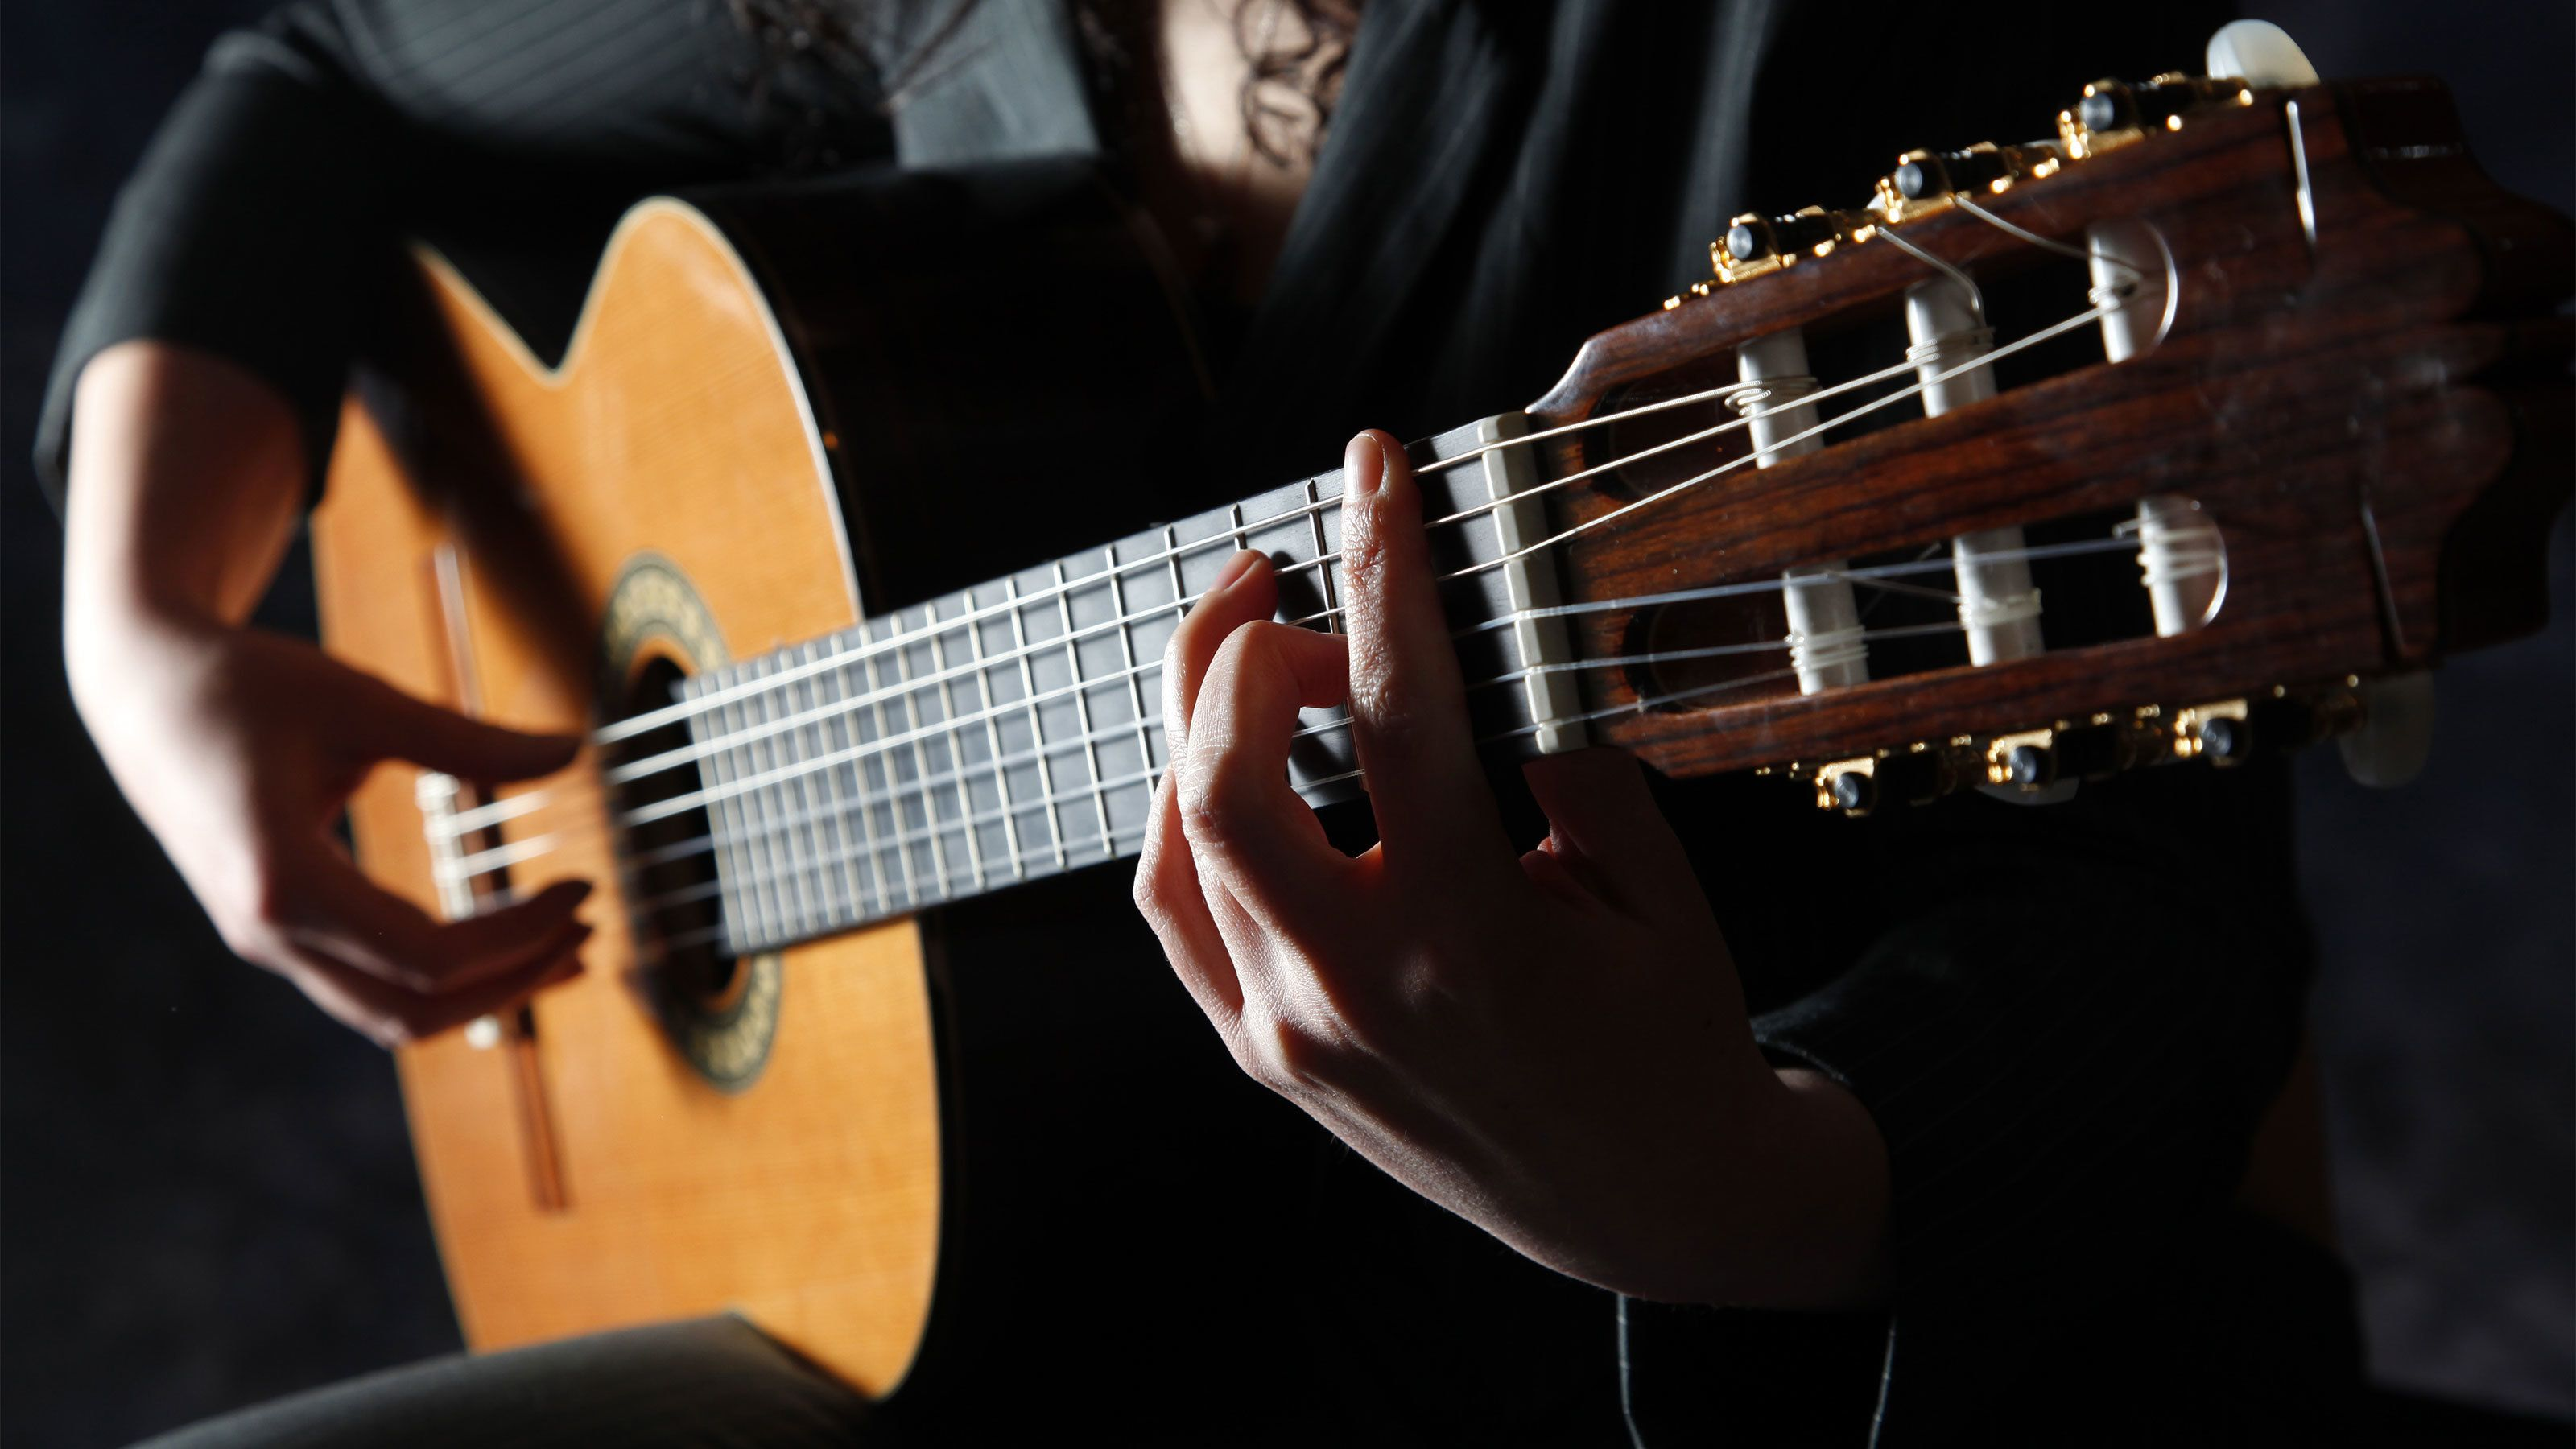 man playing Flamenco style on guitar in Barcelona